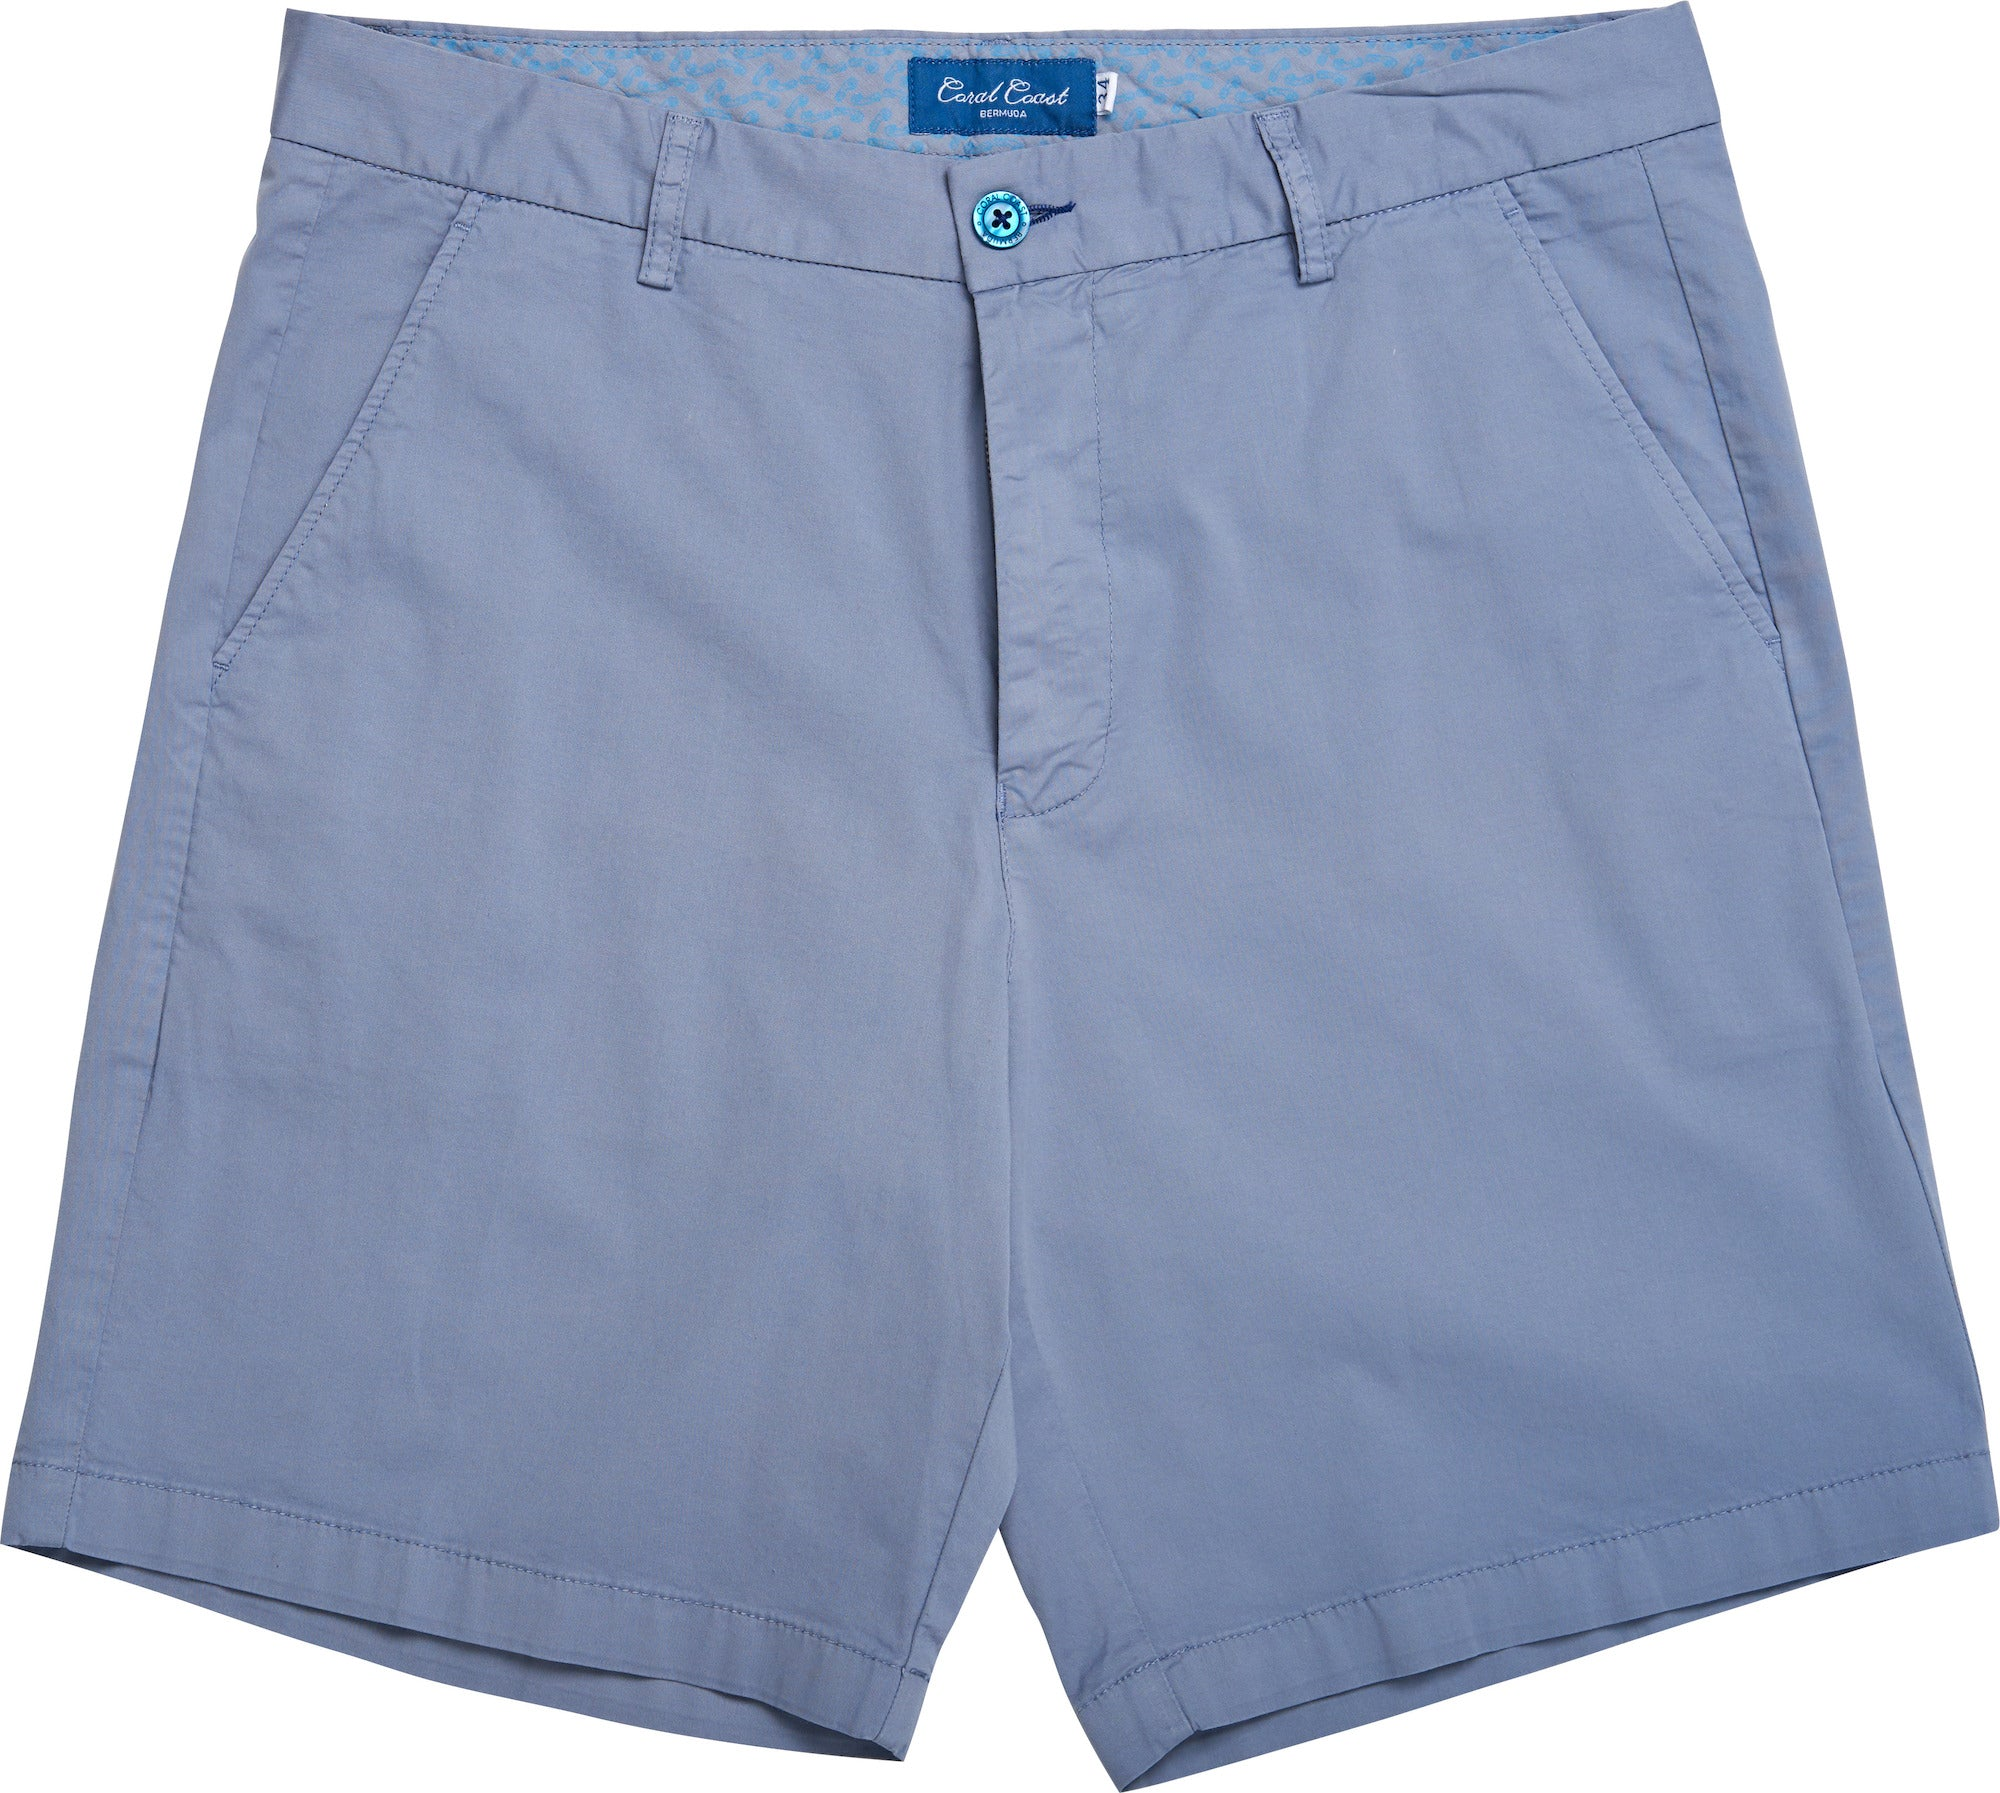 THE TEMPEST BERMUDA SHORT